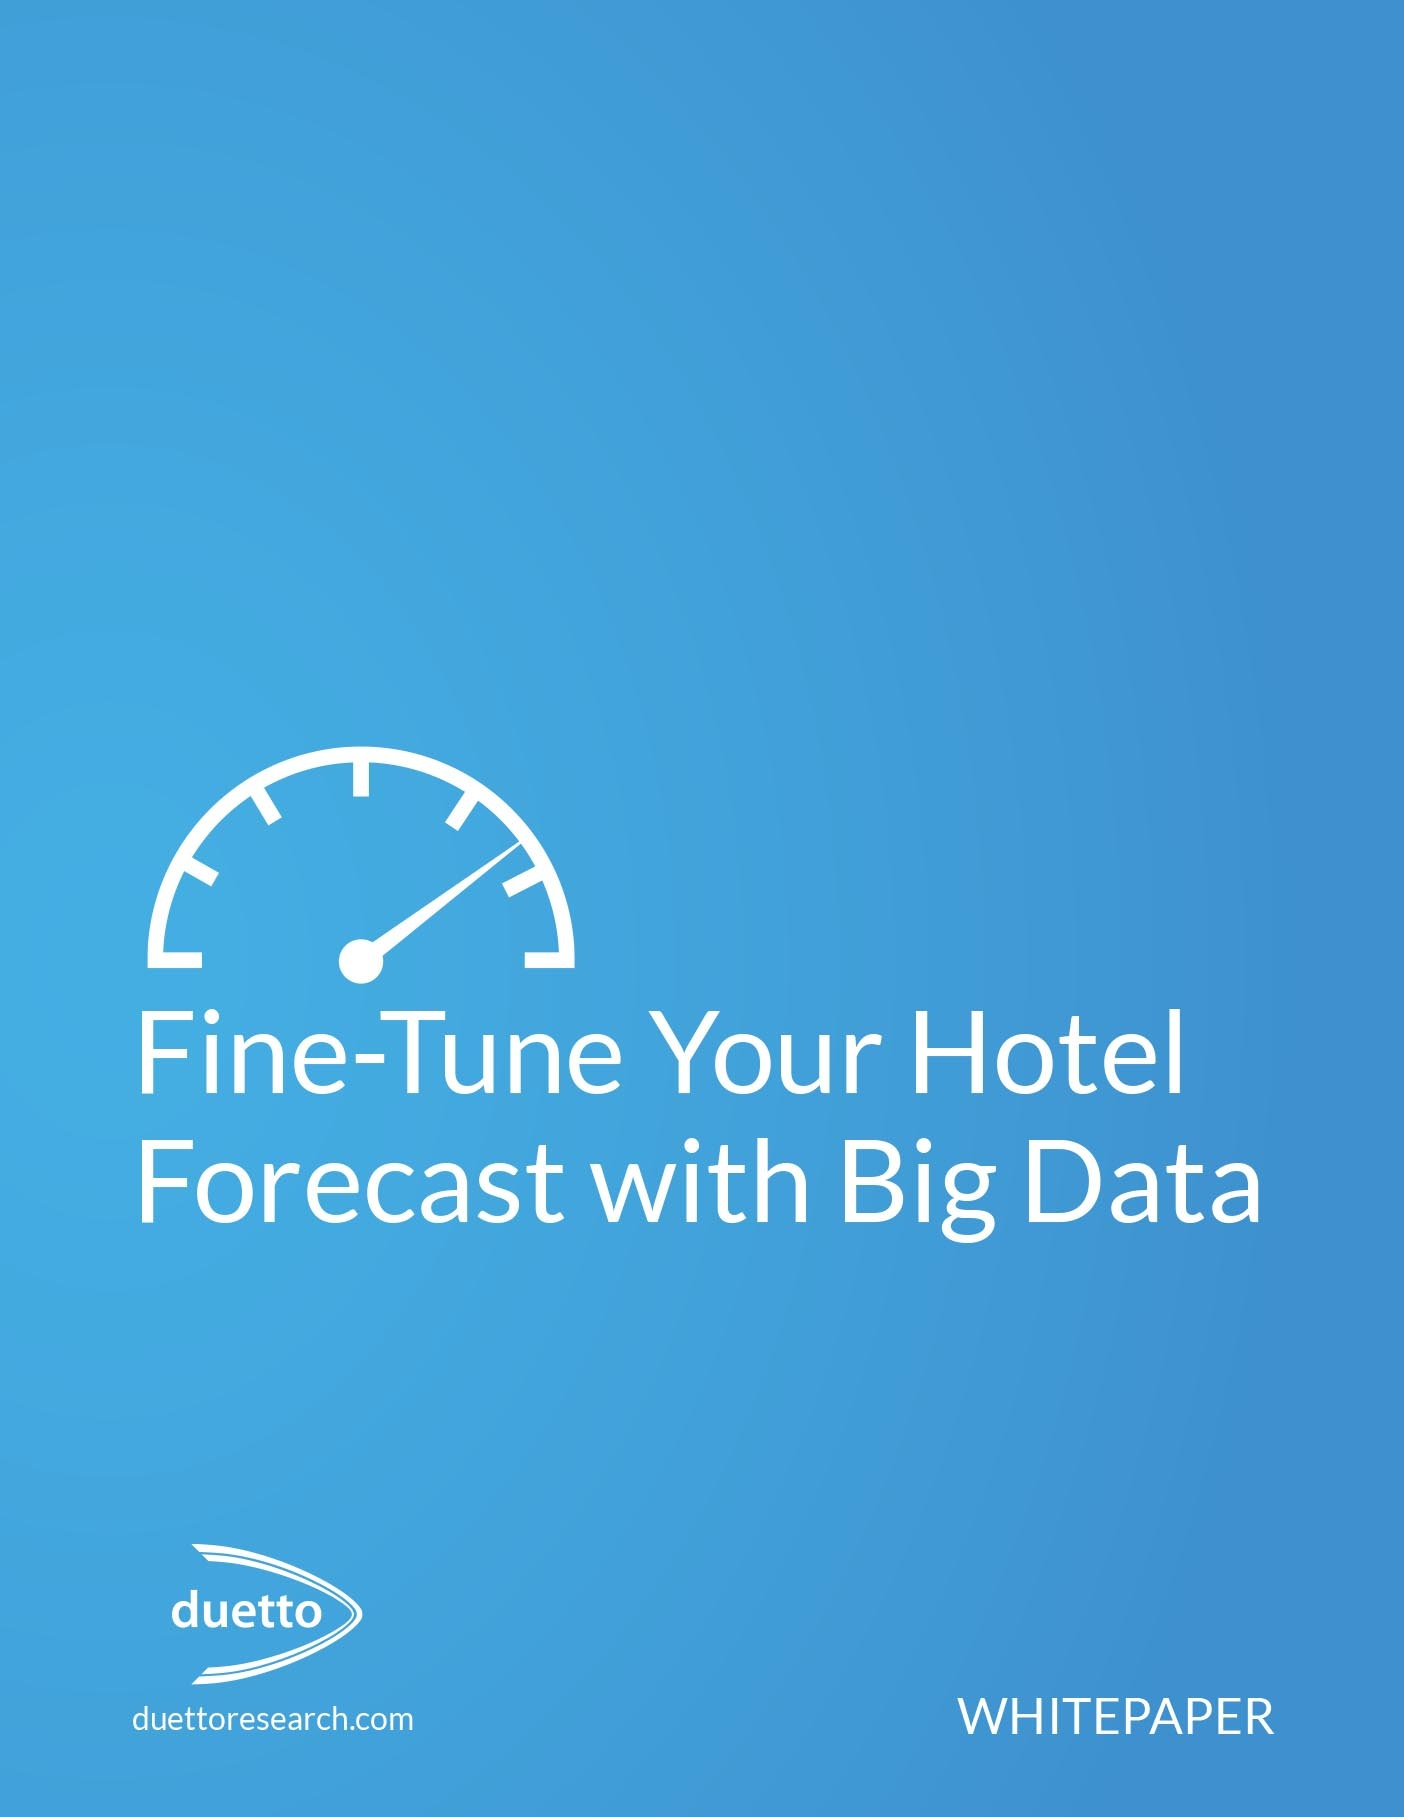 1 Fine-Tune-your-Hotel-Forecast-with-Big-Data-1.jpg